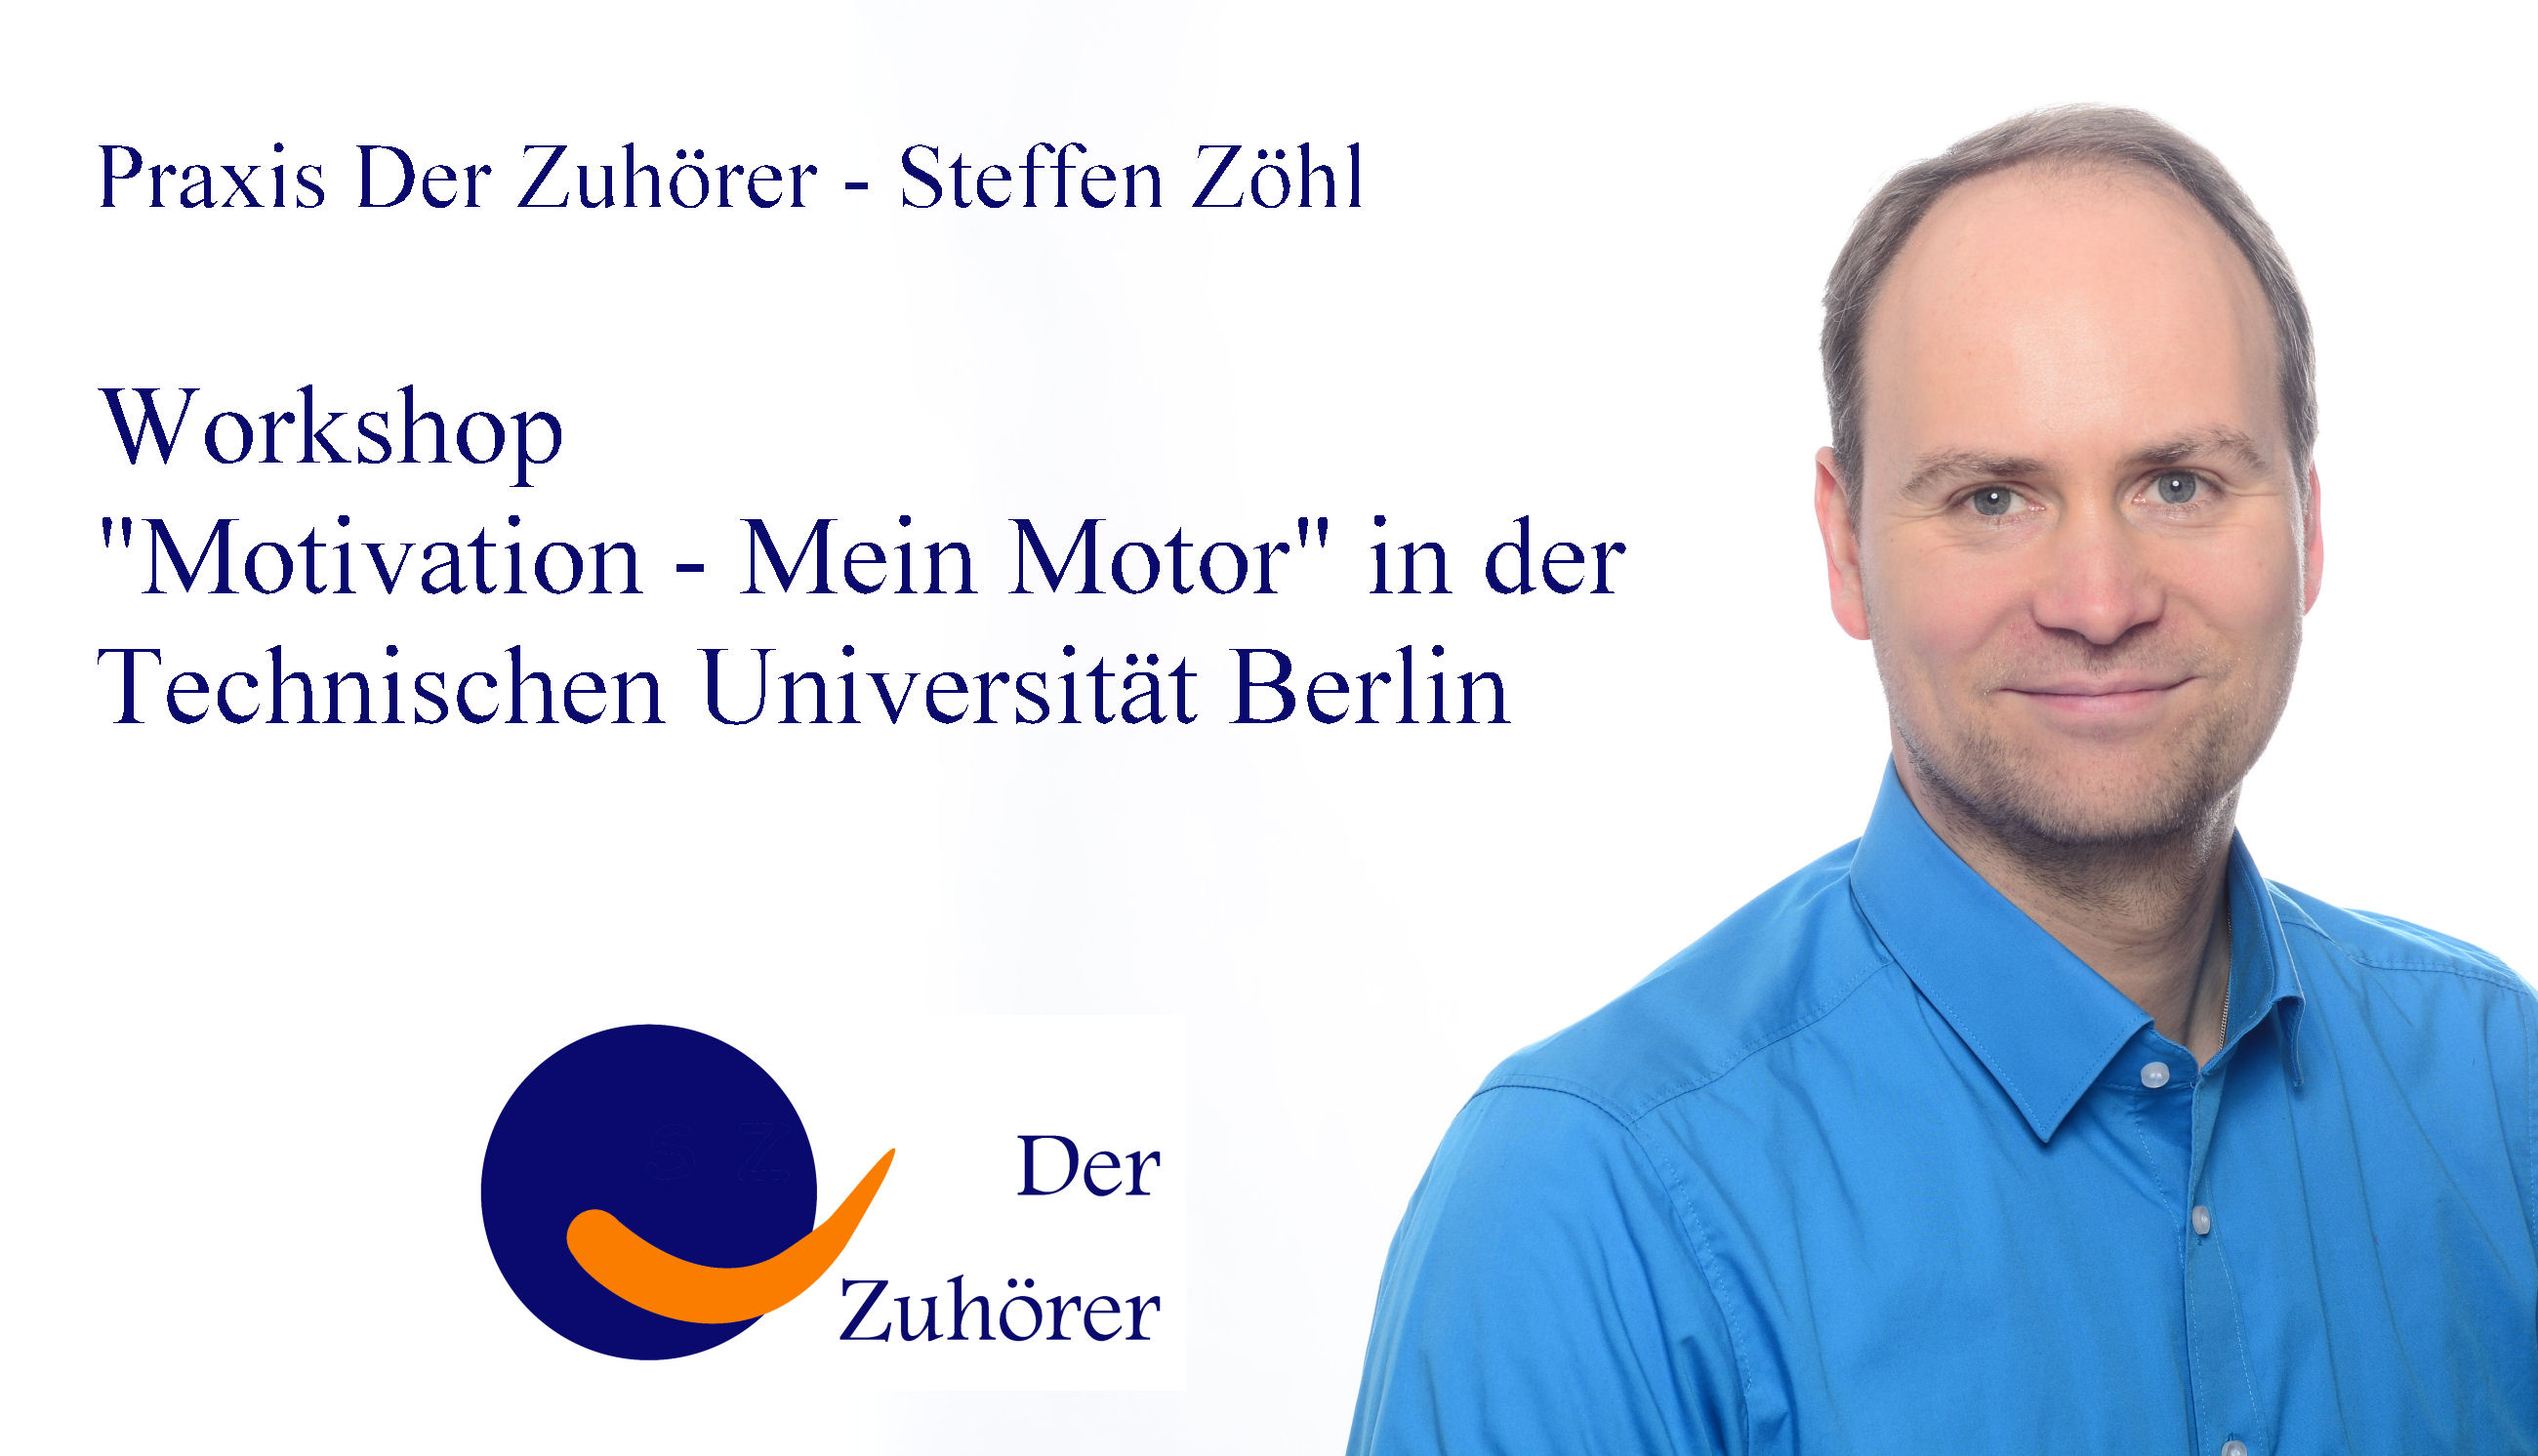 Workshop Motivation TU Berlin Technische Universität © Praxis Der Zuhörer - Steffen Zöhl, 2017